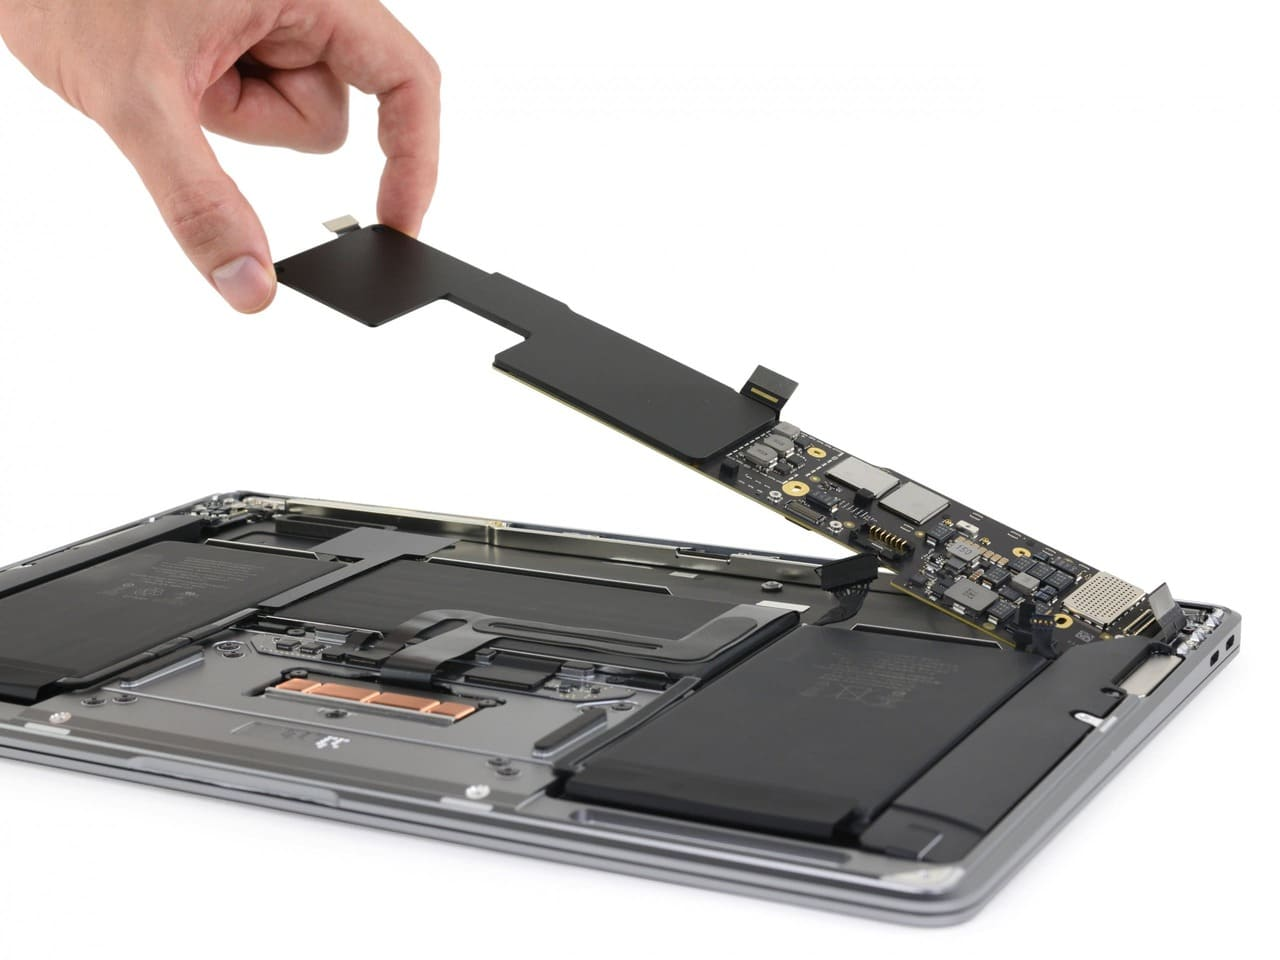 placa-base-MacBook-Apple-Silicon-M1